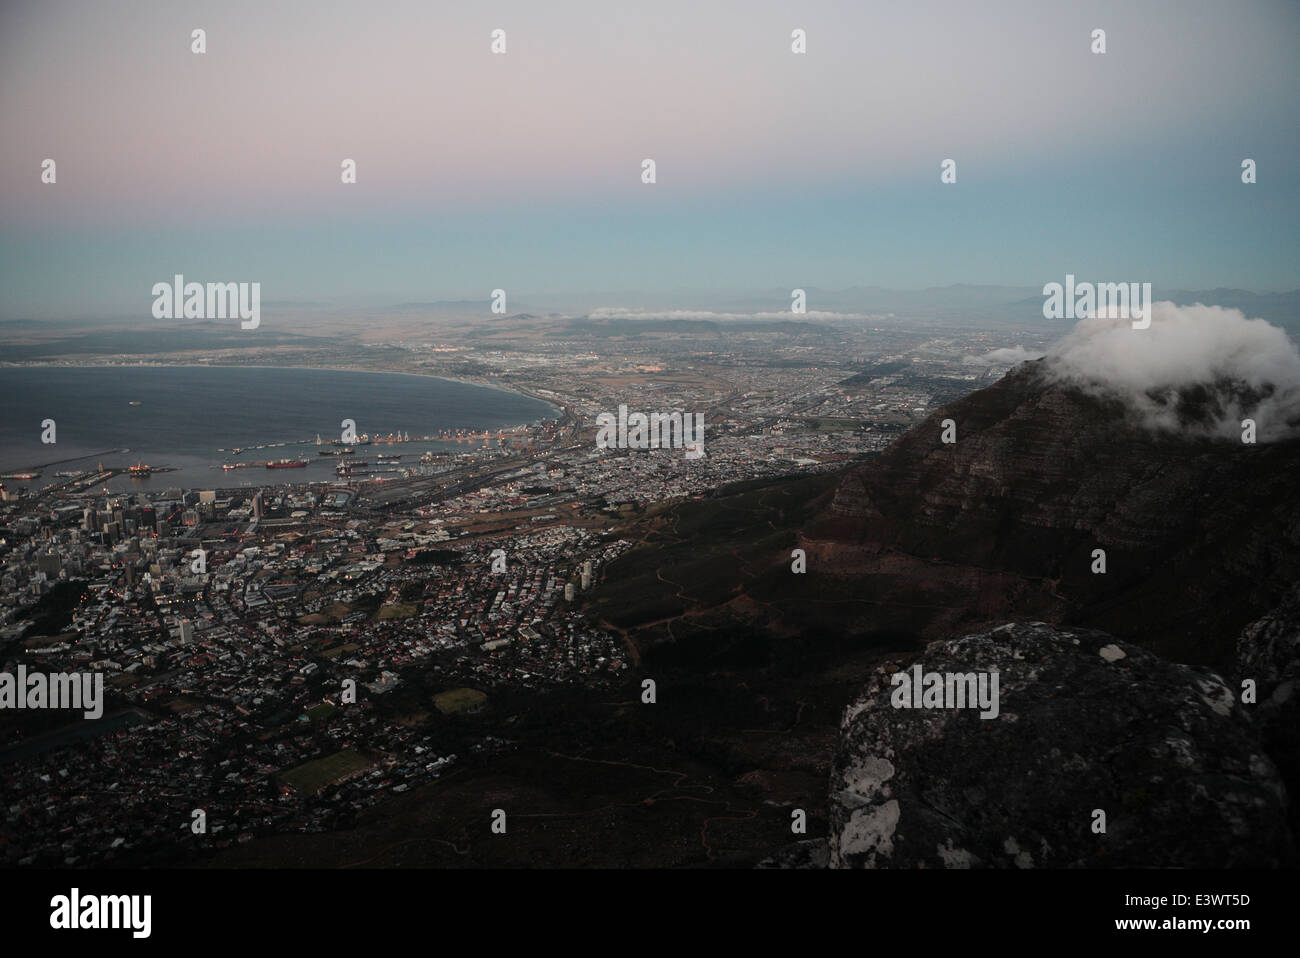 Aerial view at dusk of Cape Town, Devil's Peak and False Bay from the top of Table Mountain - Stock Image